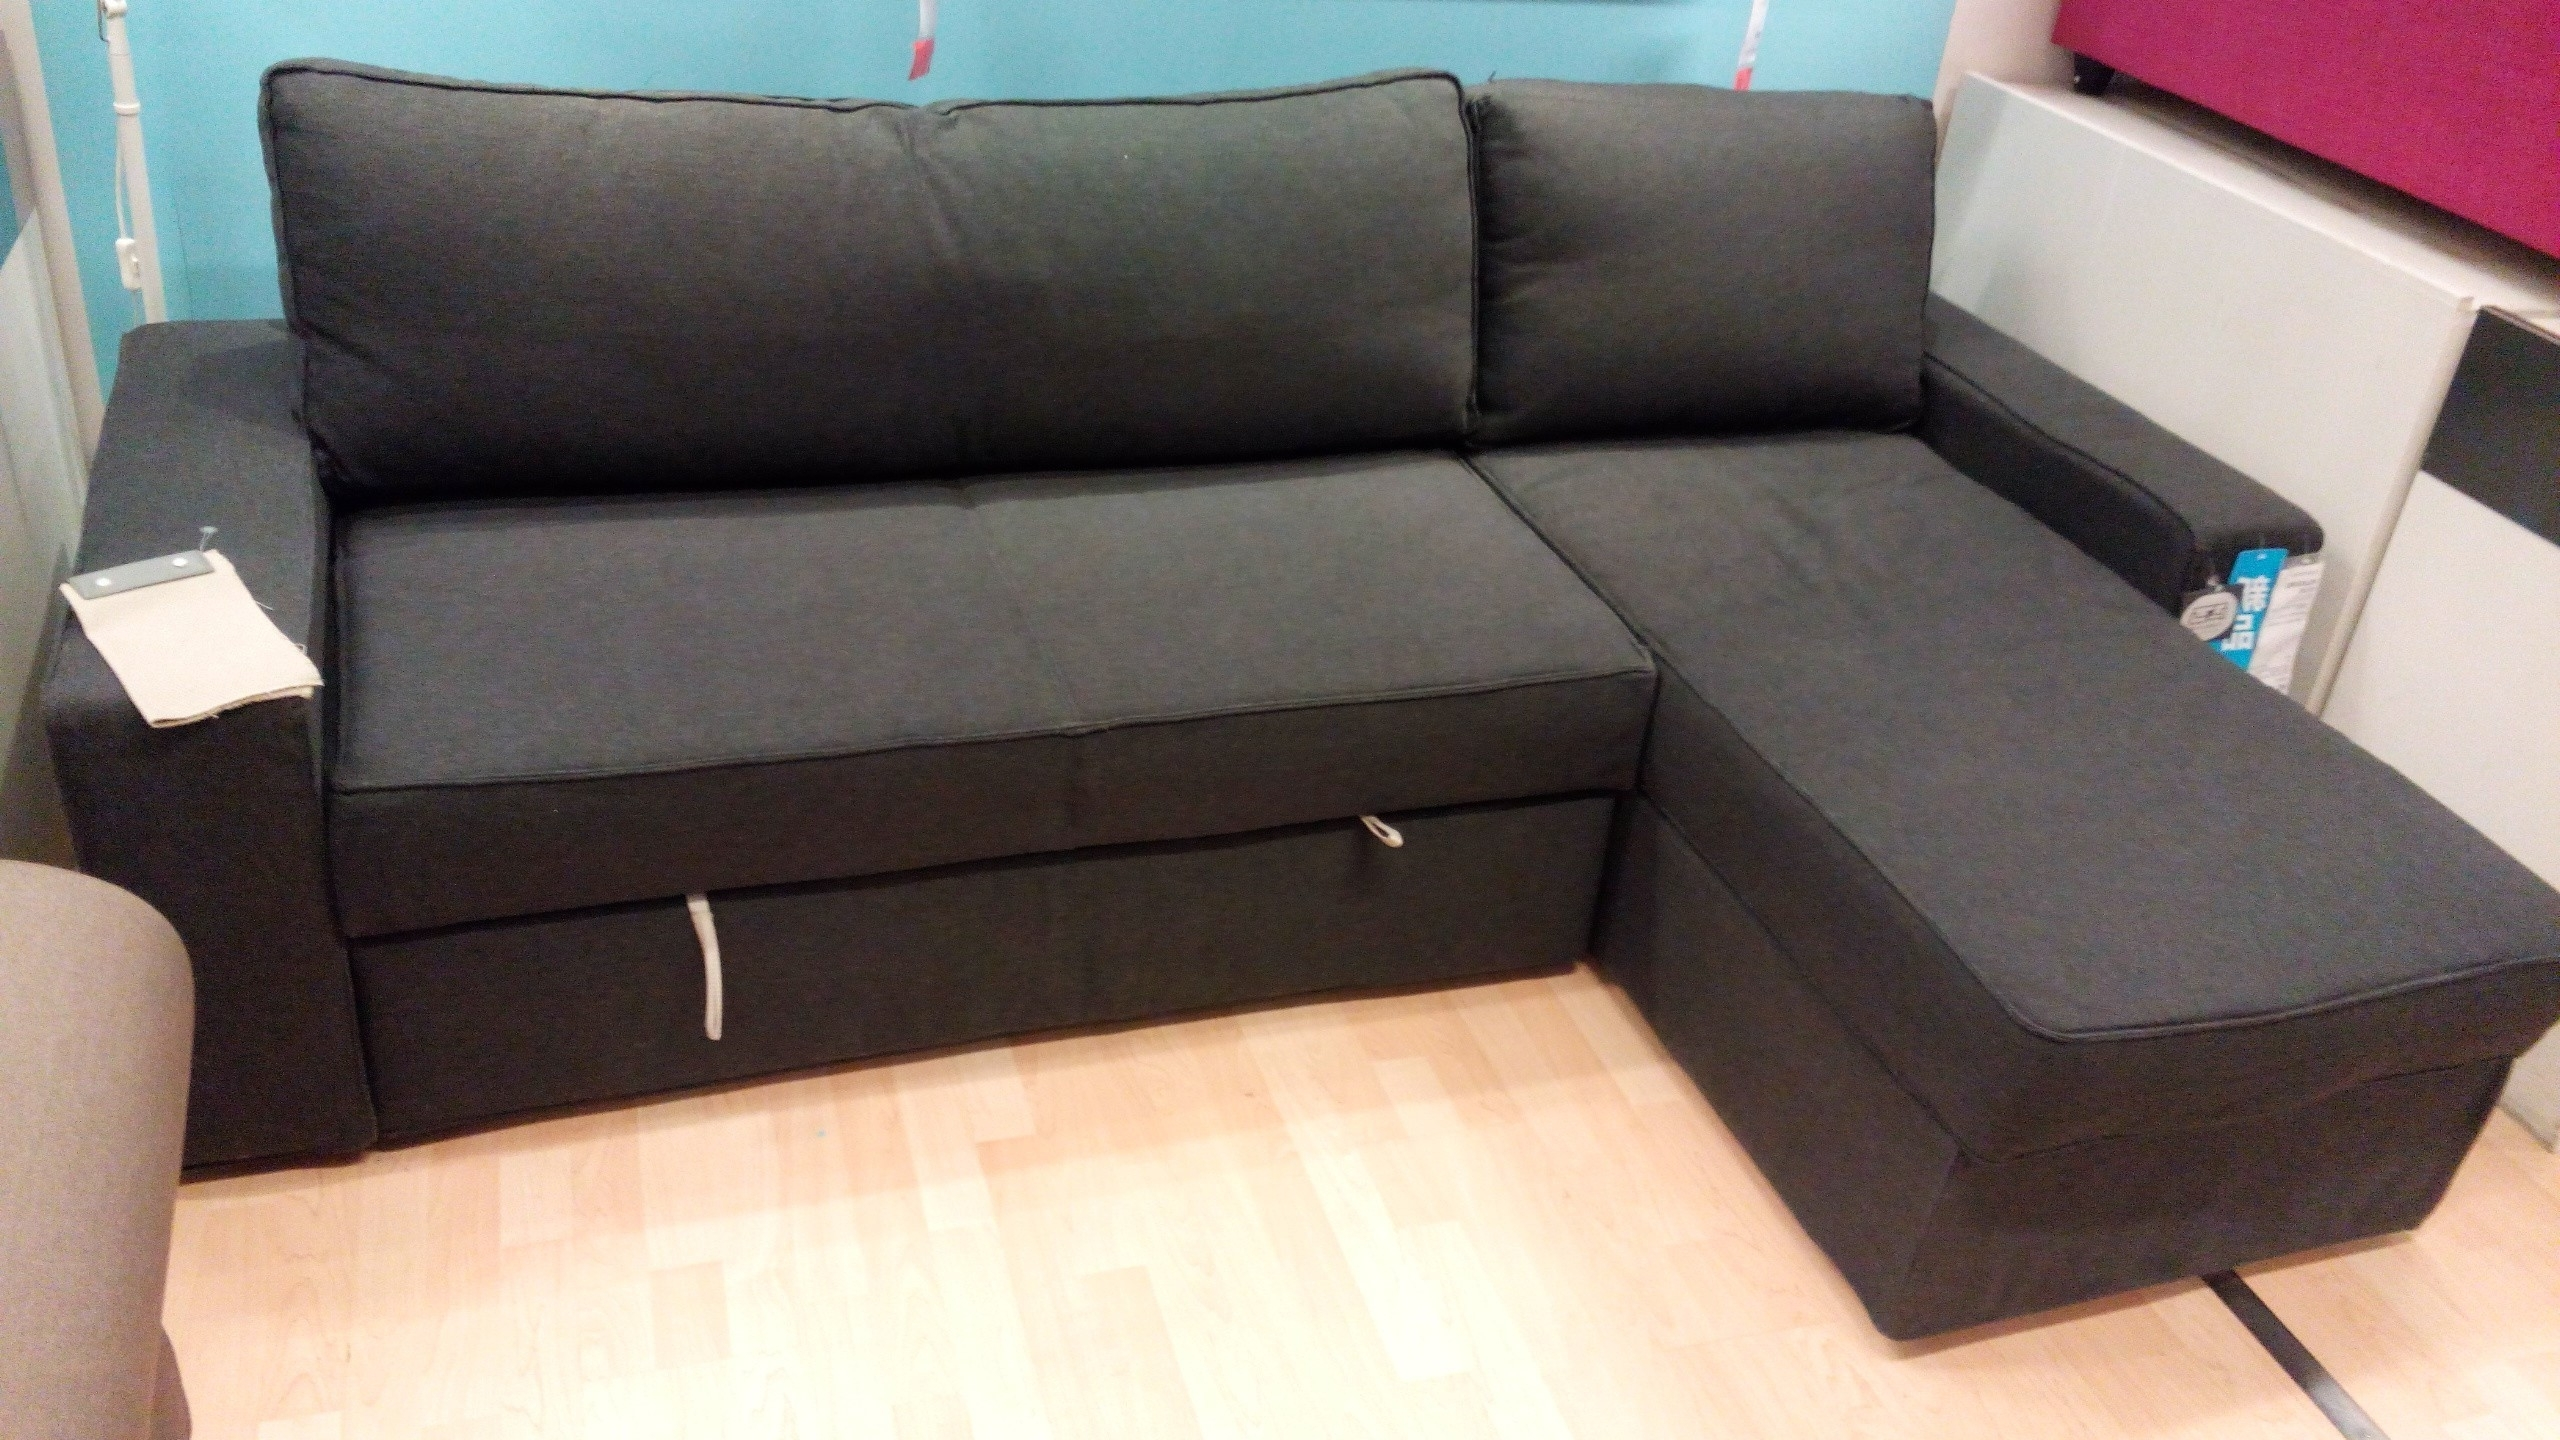 Most Recently Released Sleeper Sofas Ikea Amazing Sectional Sofa Perfect #20839 Cozy Within Sectional Sofas At Ikea (View 10 of 15)